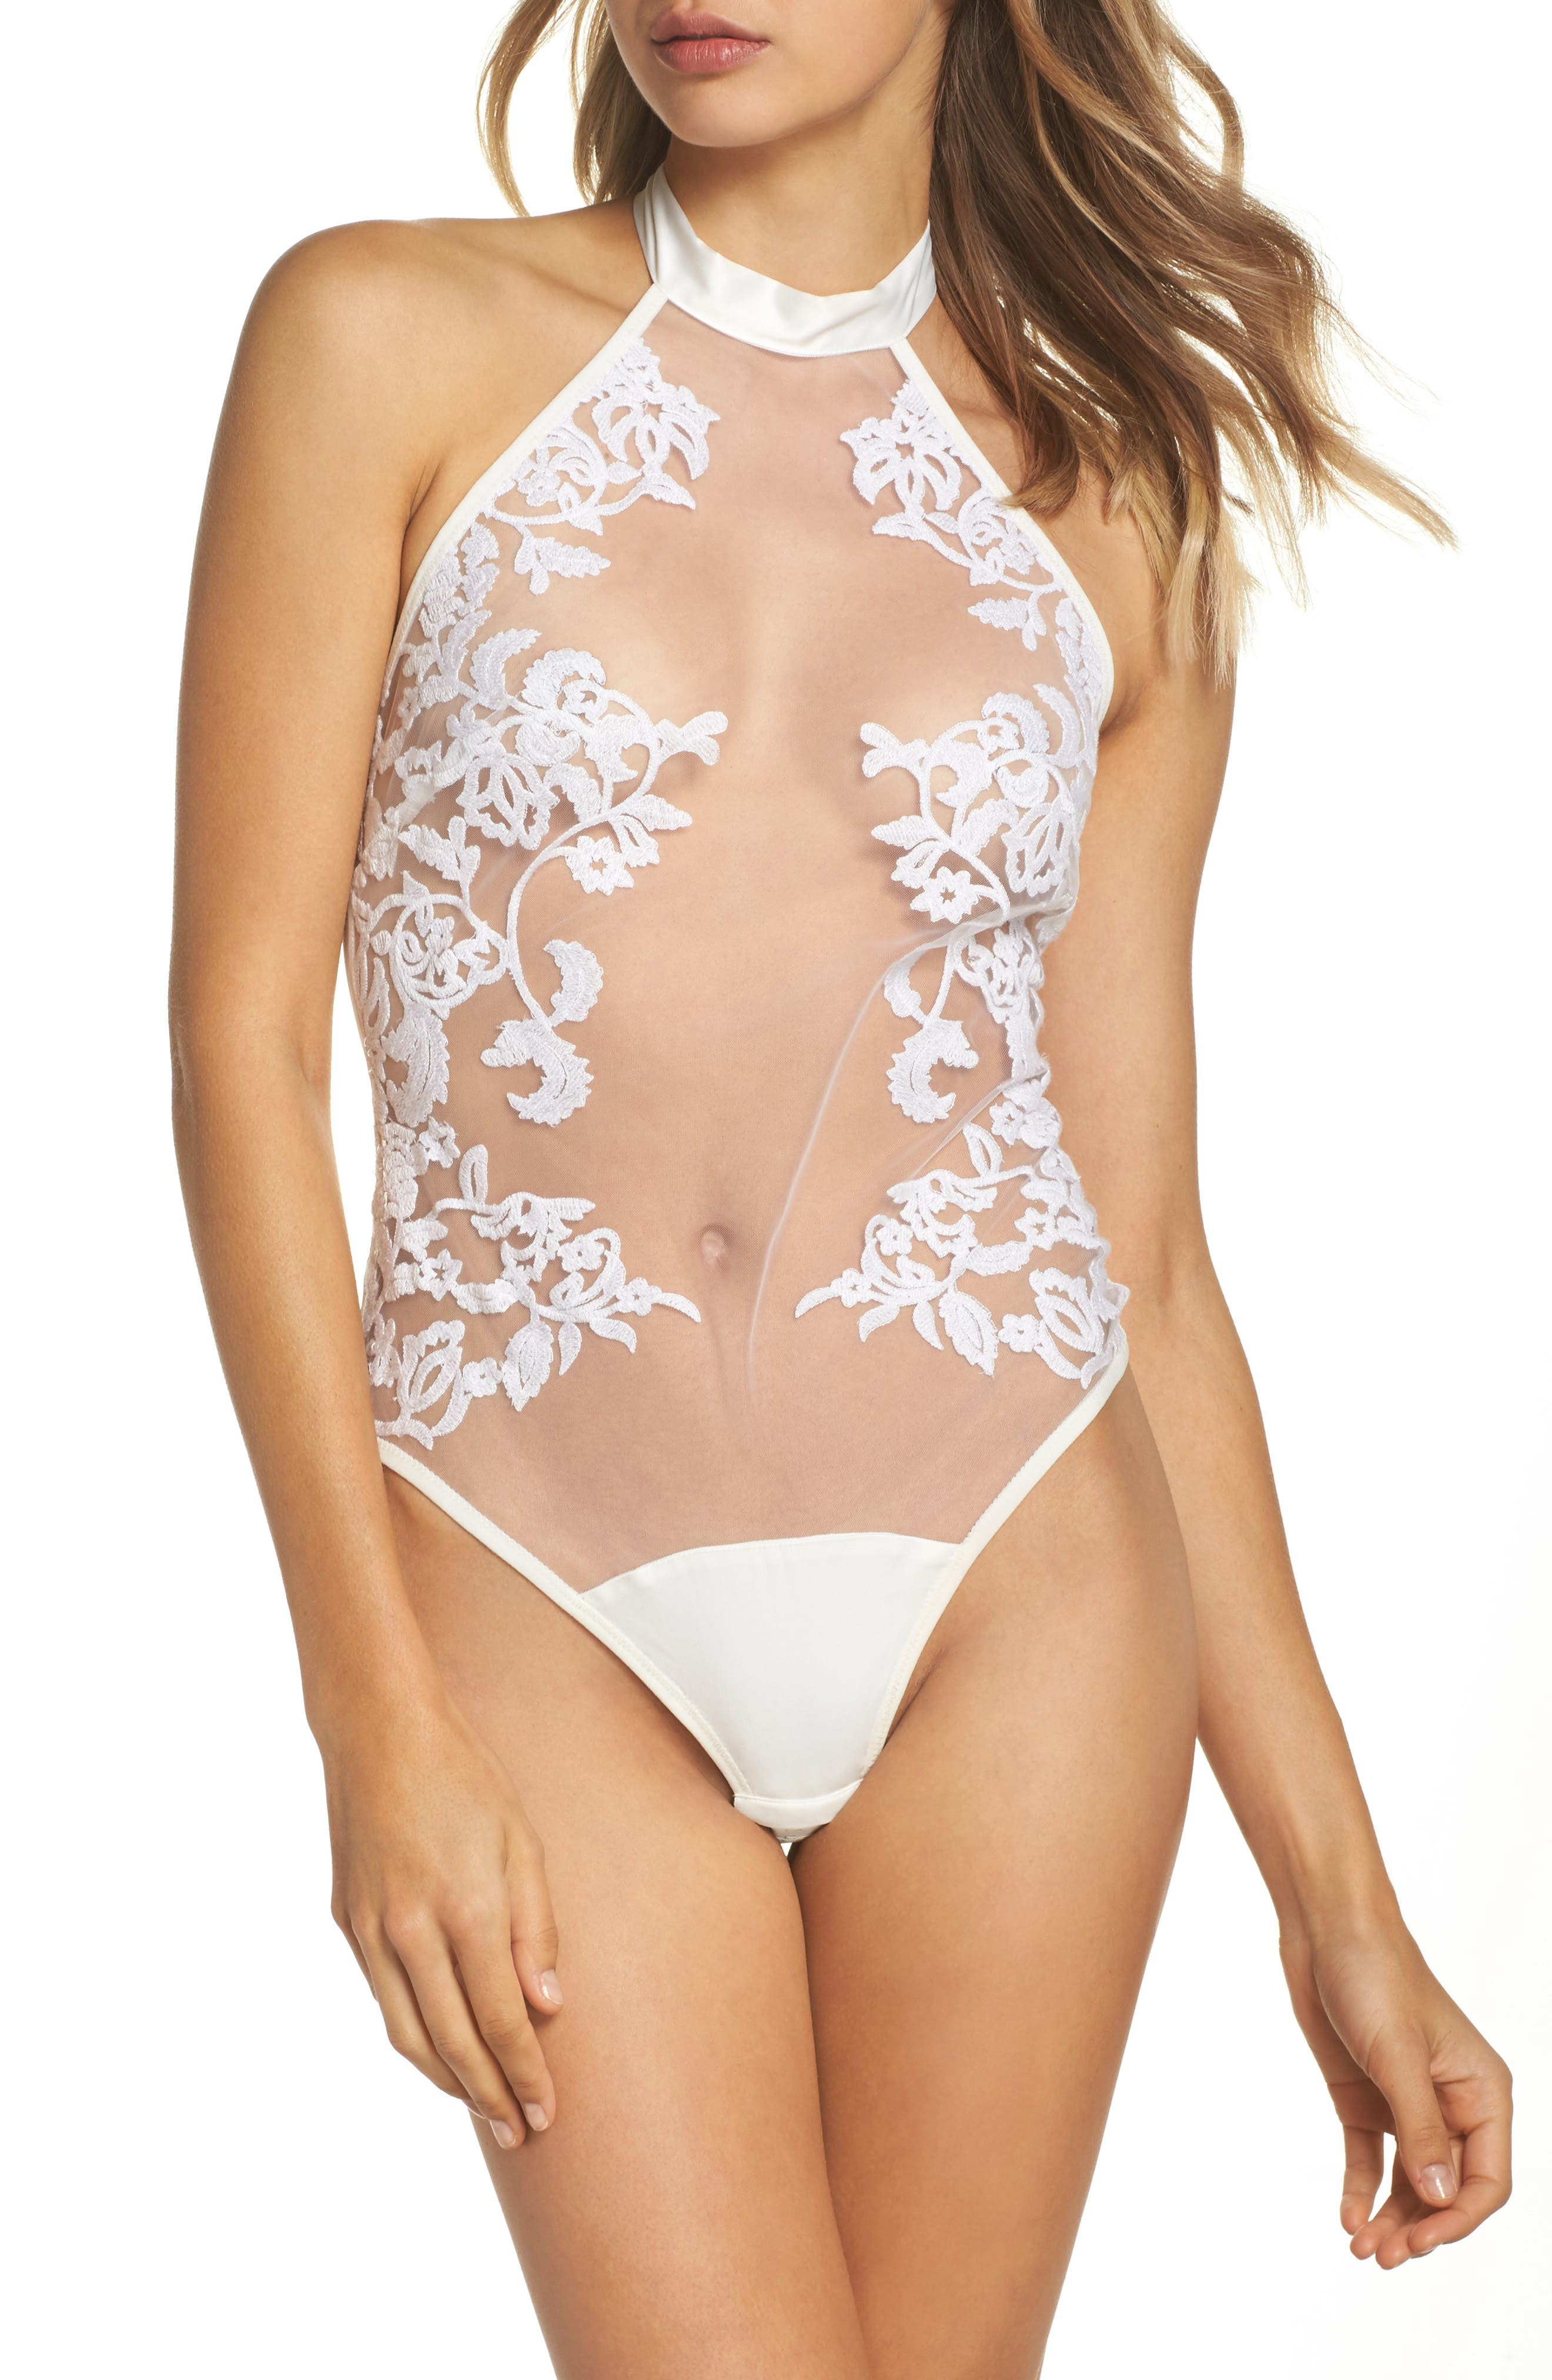 Thistle & Spire Cornelia Bodysuit,                             Main thumbnail 1, color,                             Ivory